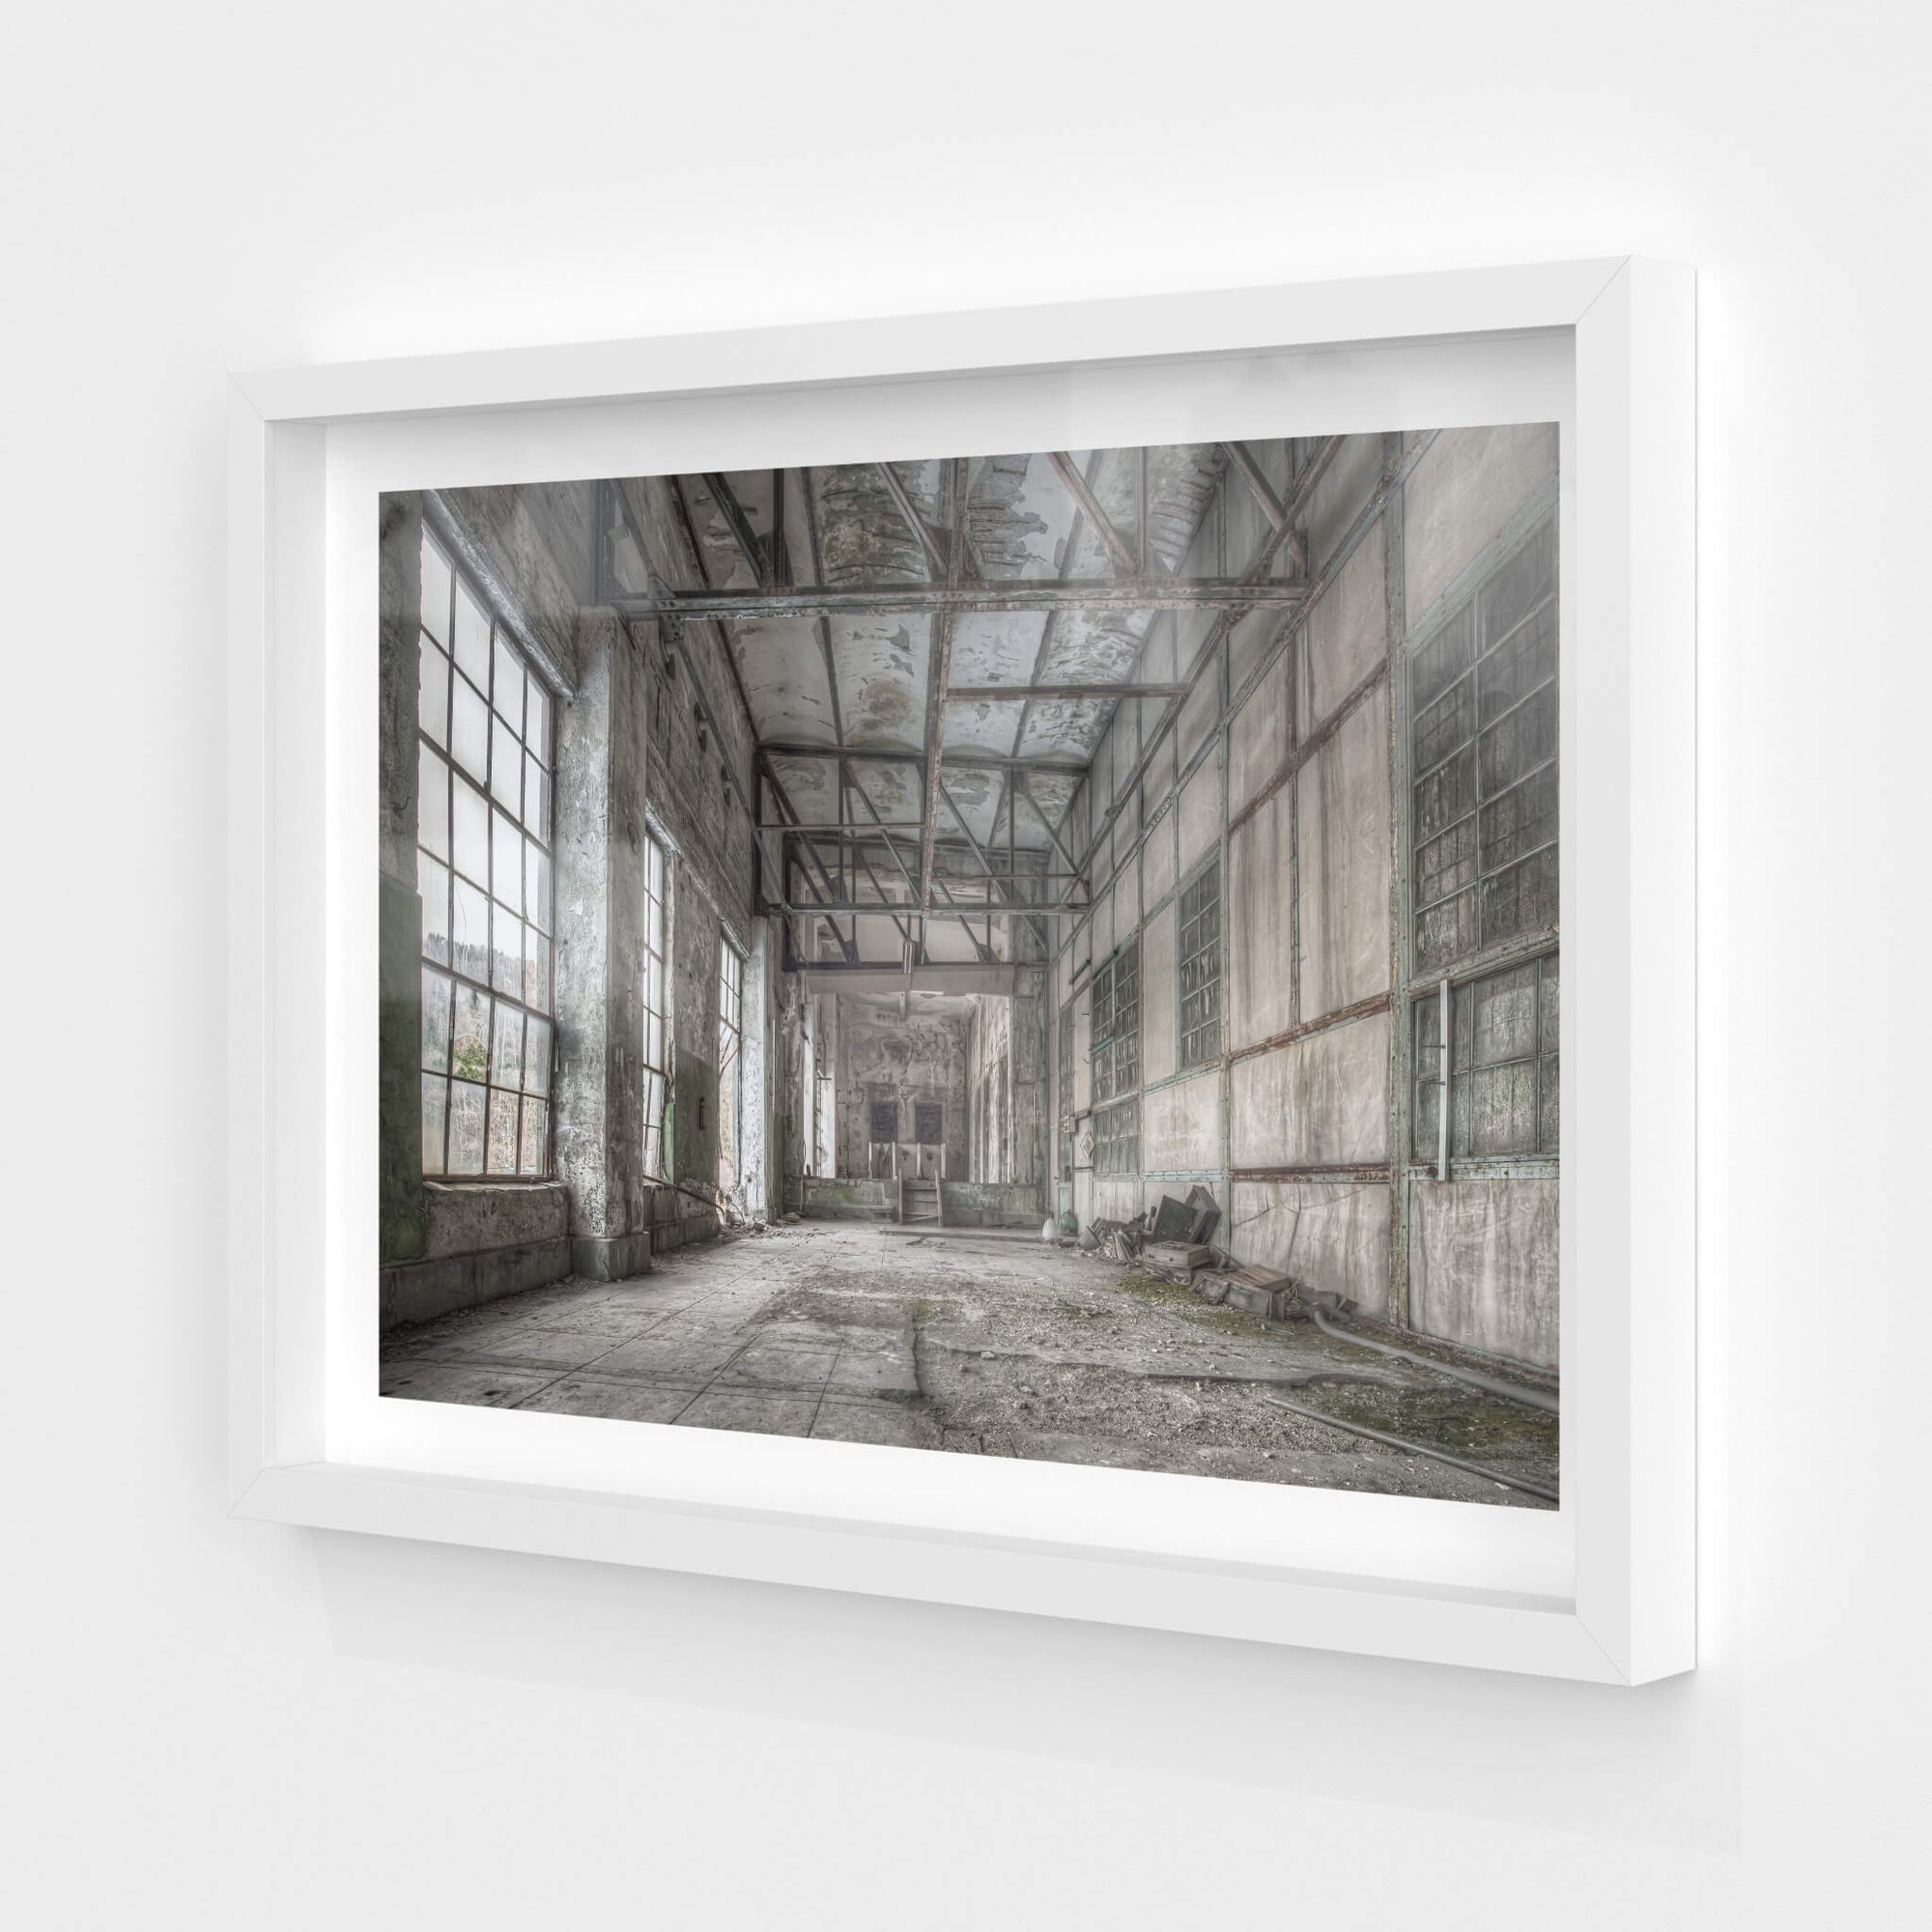 South East Control Room | Shimizusawa Thermal Power Plant Fine Art Print - Lost Collective Shop